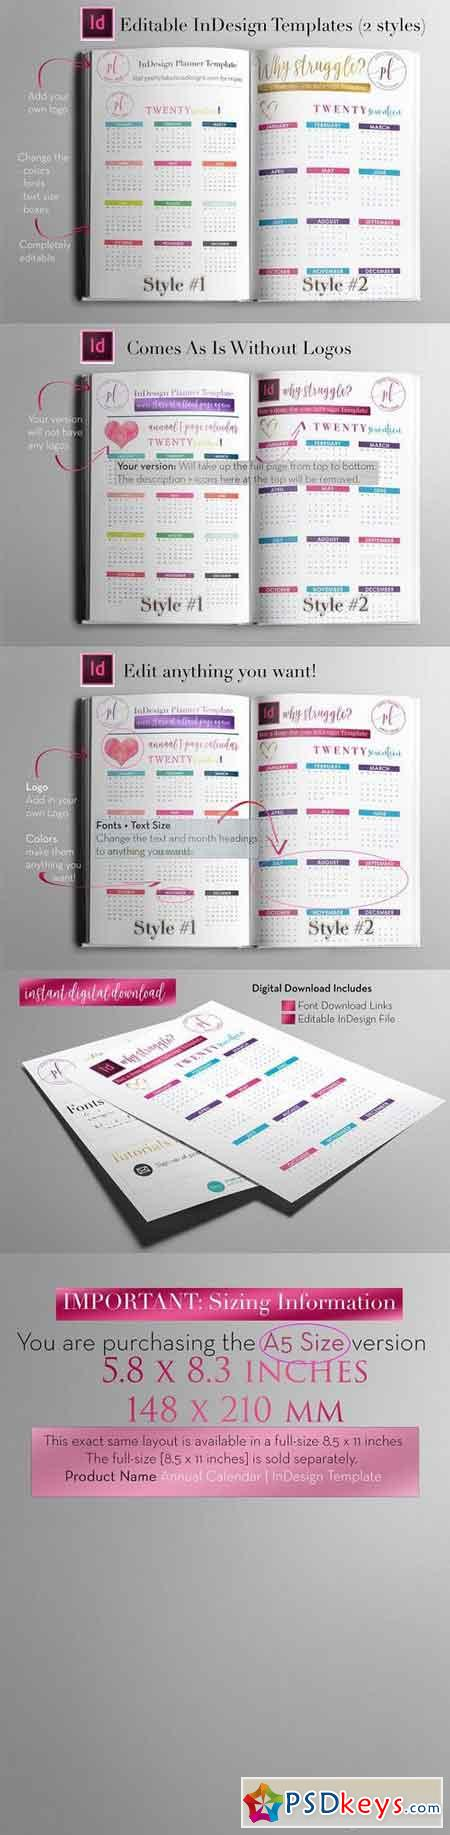 a5 annual calendar indesign templa 1113016 free download photoshop vector stock image via. Black Bedroom Furniture Sets. Home Design Ideas